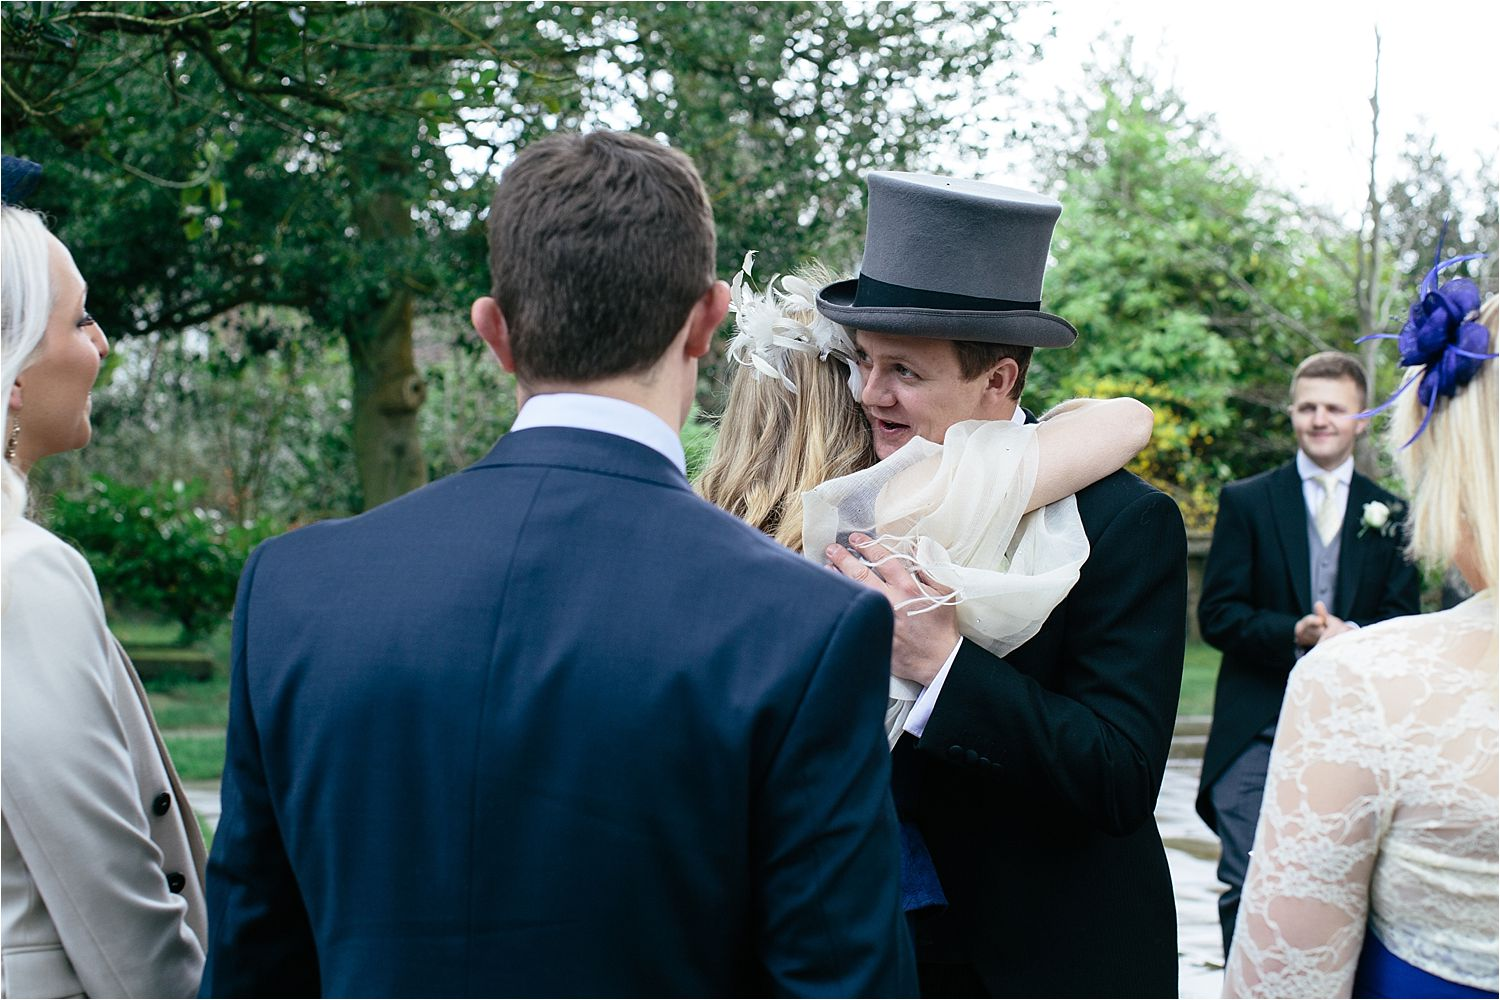 The bridegroom greets his guests outside the church in Prestbury